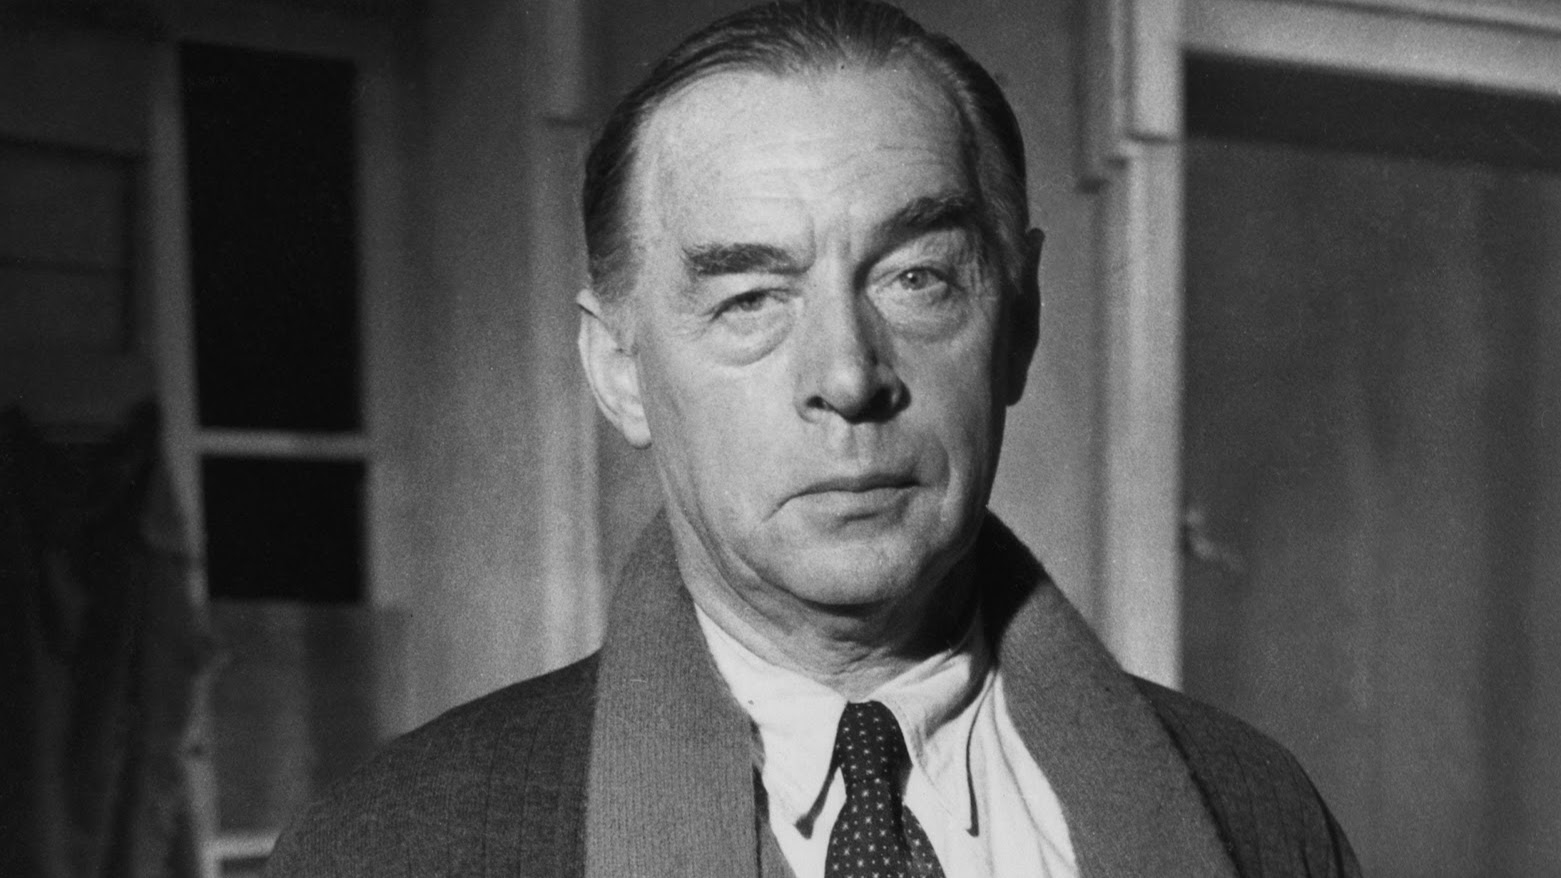 German writer Erich Maria Remarque (1898 - 1970), author of 'All Quiet On The Western Front,' stands on the set of the film, 'A Time To Love And A Time To Die,' October 1957. Remarque played a role in the film which was adapted from his novel and directed by Douglas Sirk. (Photo by Express Newspapers/Getty Images)